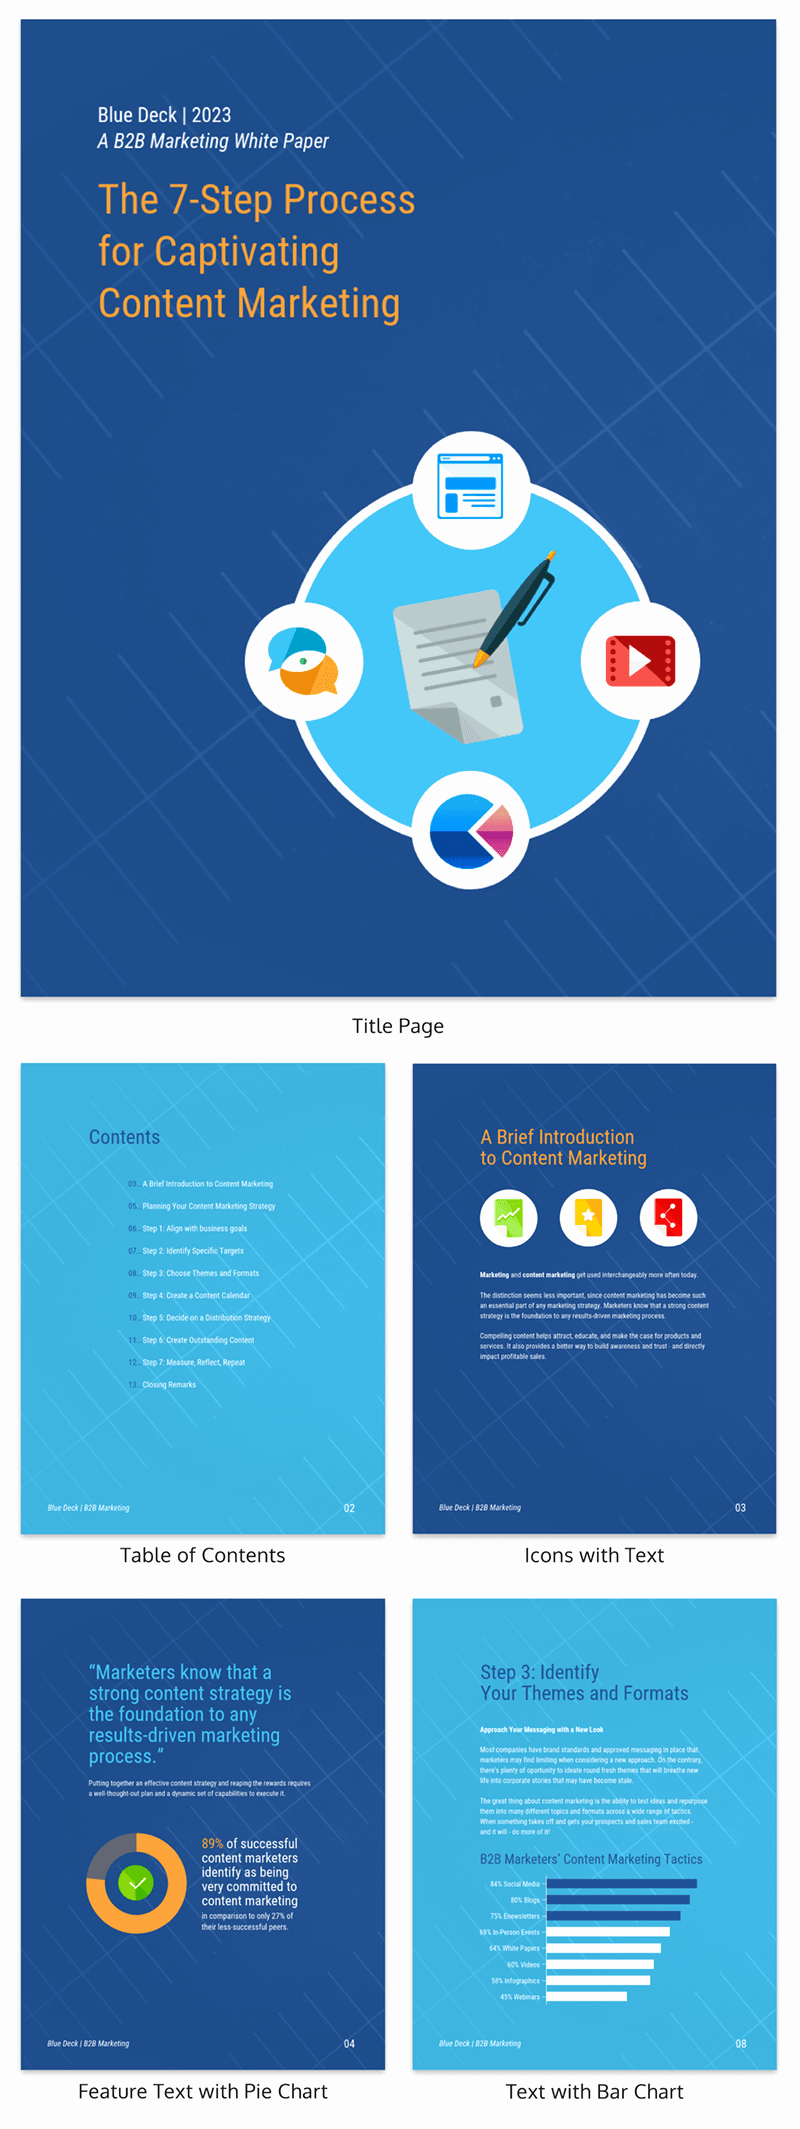 White Paper Examples New 20 Page Turning White Paper Examples [design Guide